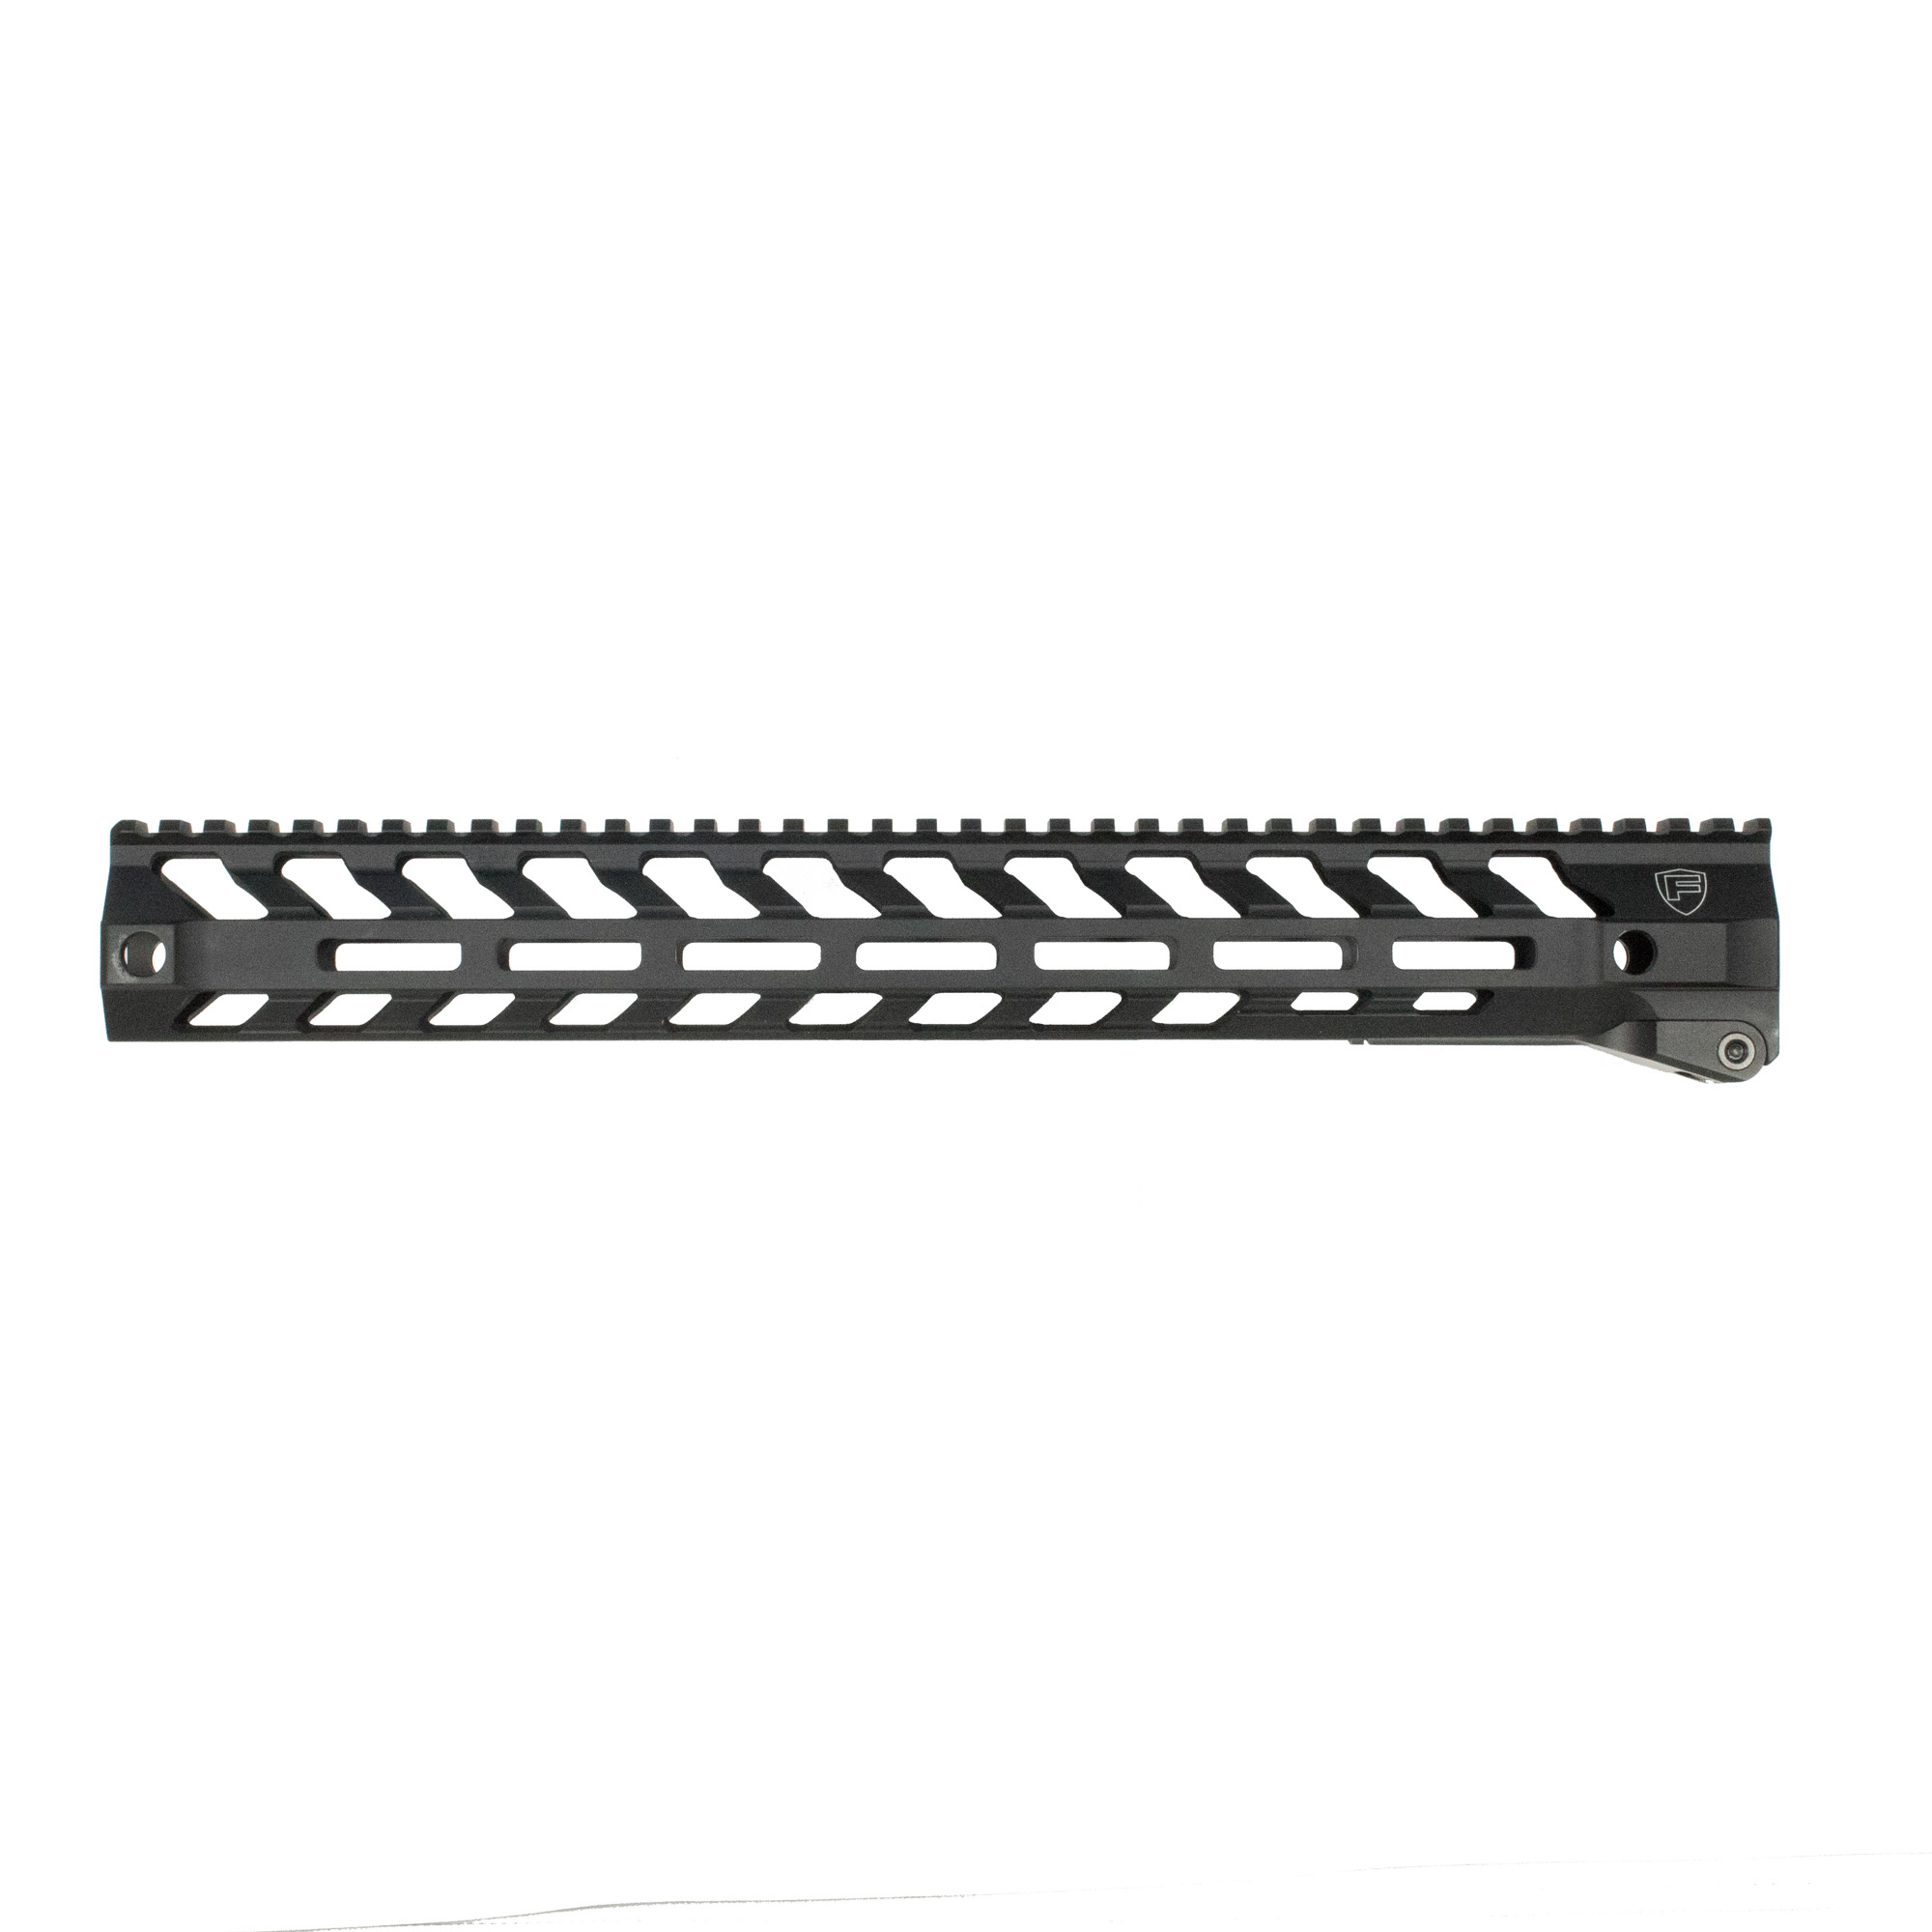 SWITCH™ 556 Rail System - 14.8